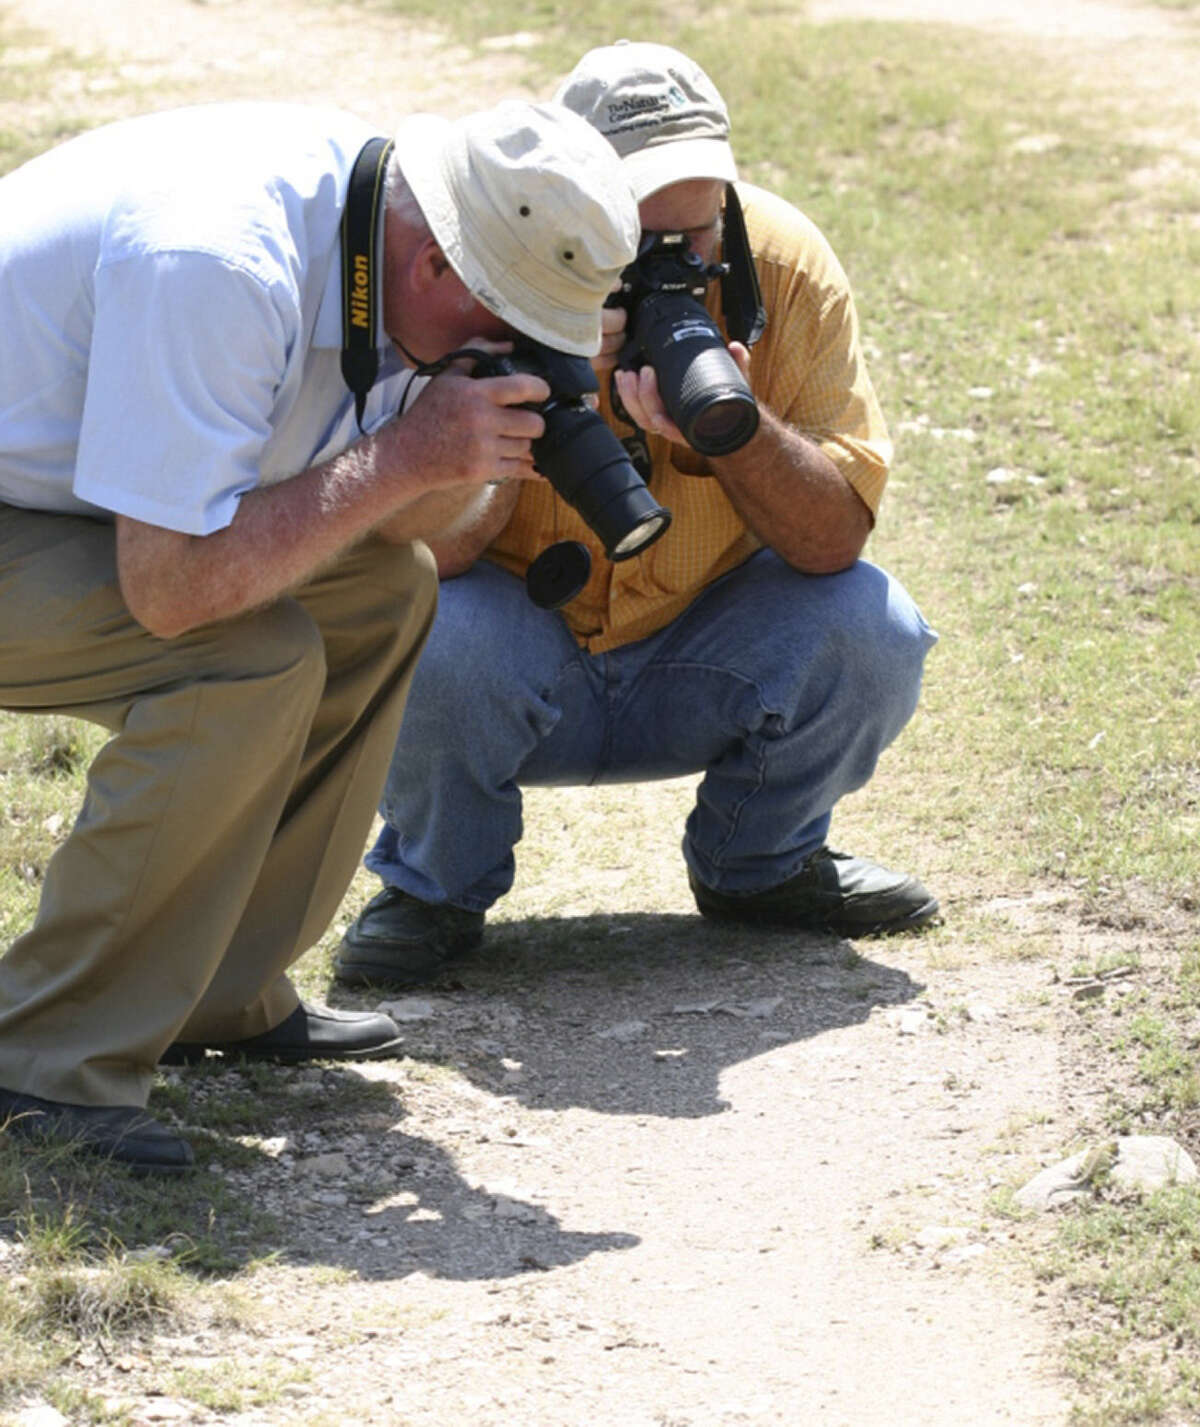 Mike Duran of the Nature Conservancy and Ralph Axtell of Southern Illinois University shoot photos of a spot-tailed earless lizard.